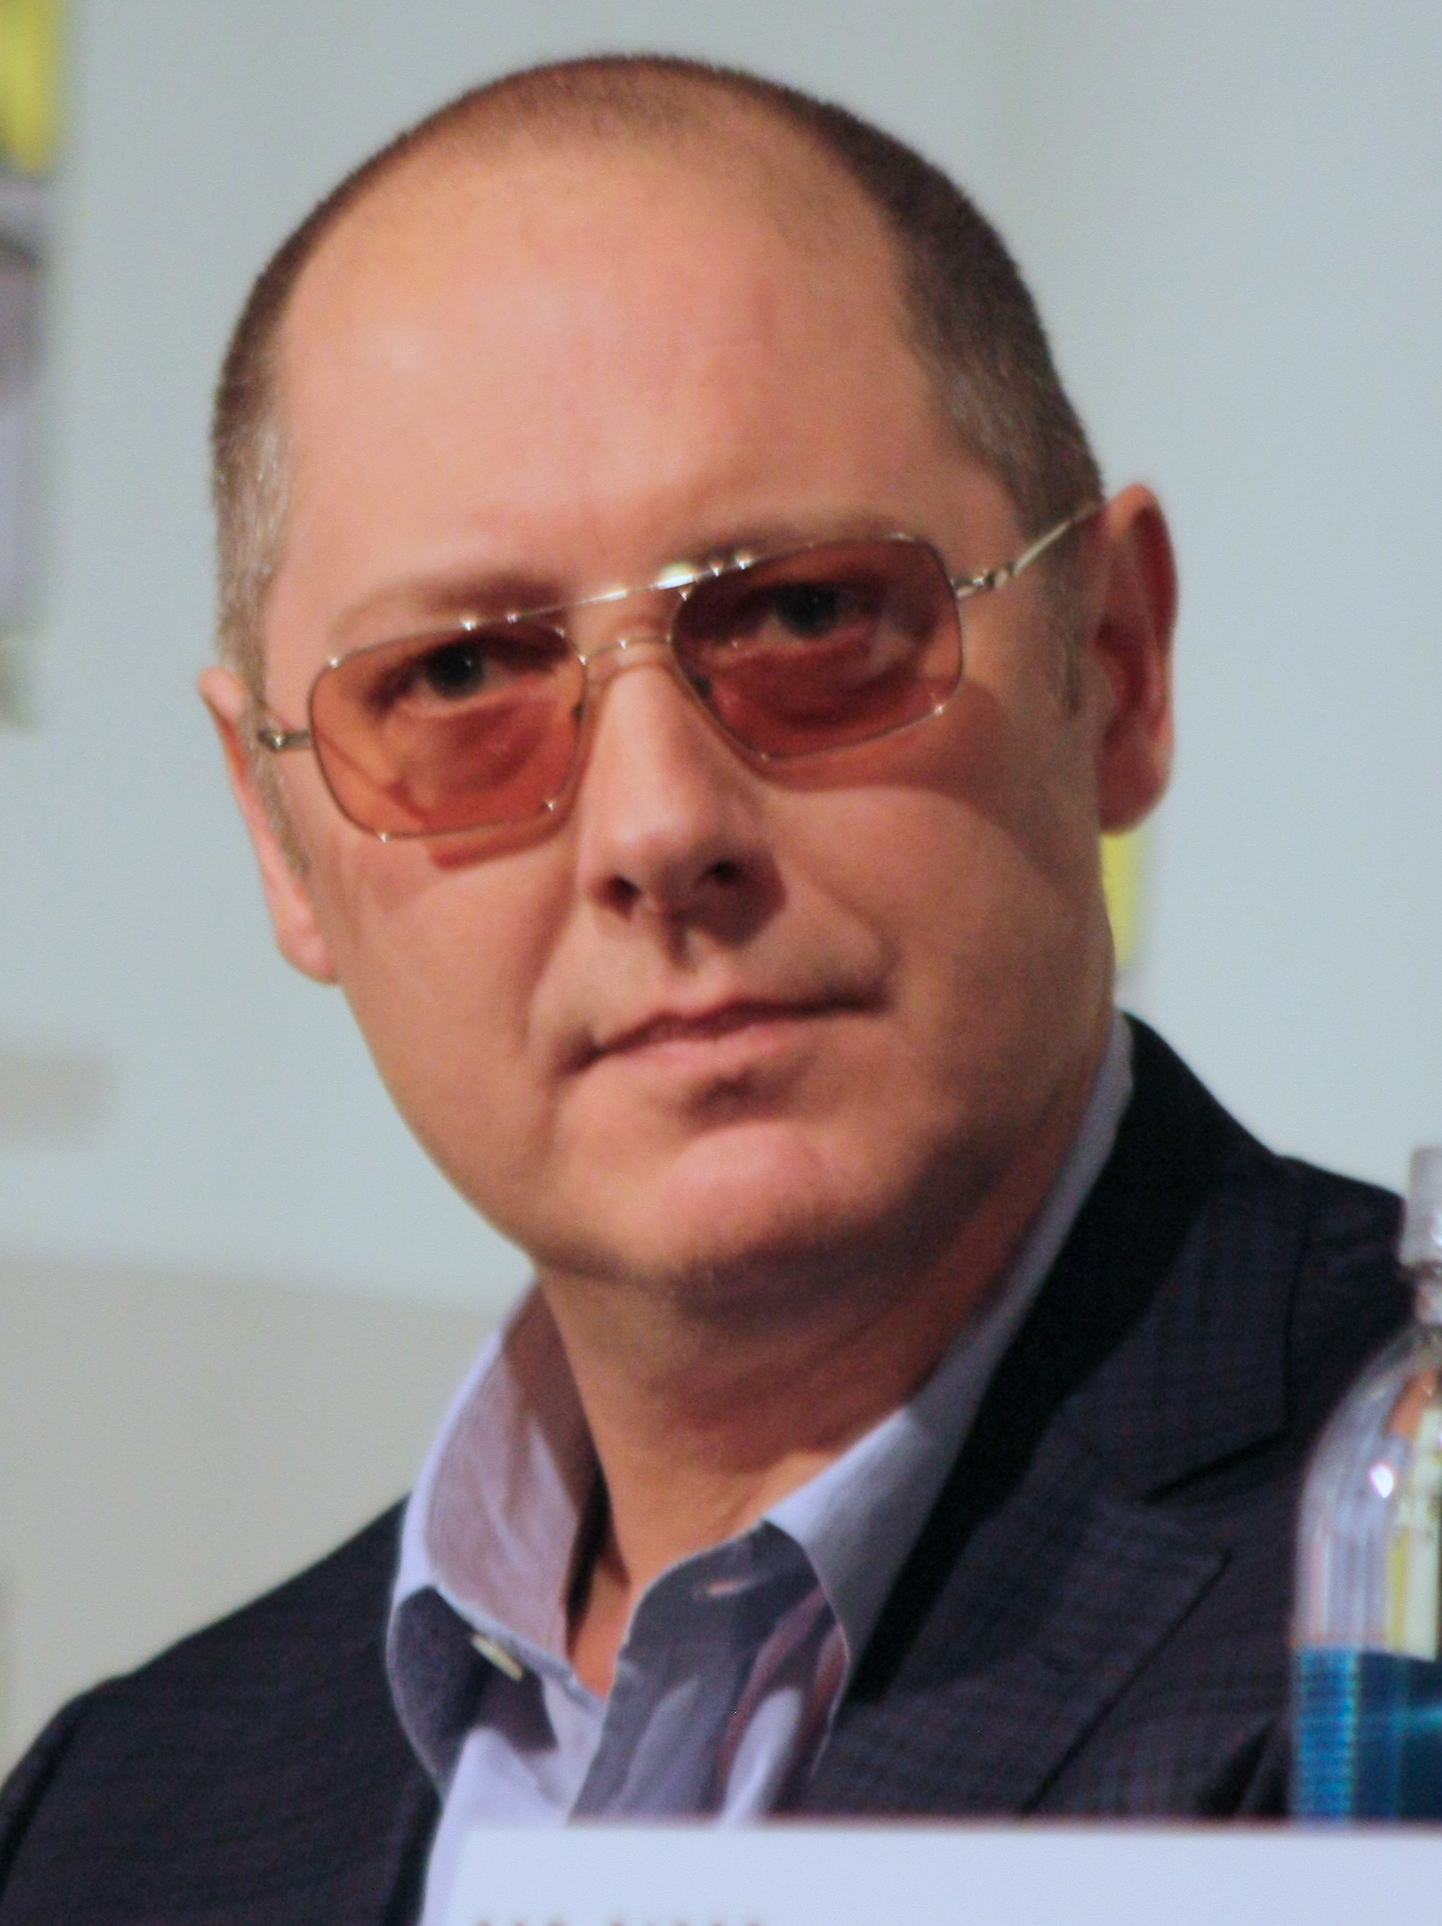 James Spader  - 2020 Light brown hair & casual hair style.